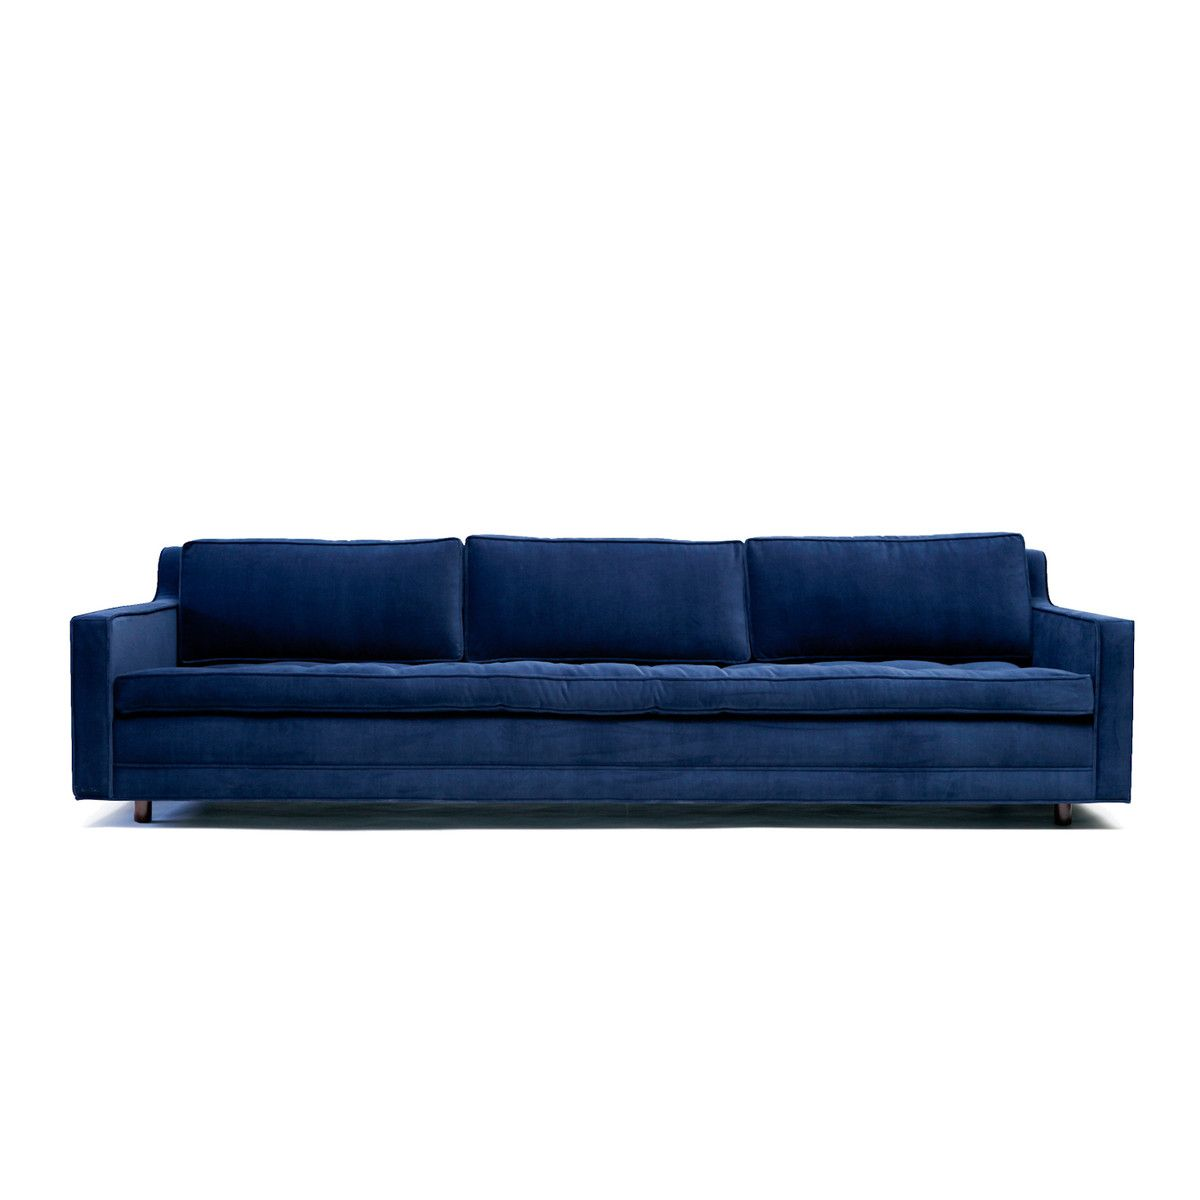 Up Three Seater Sofa in Deep Blue | Decor and Design | Pinterest ...